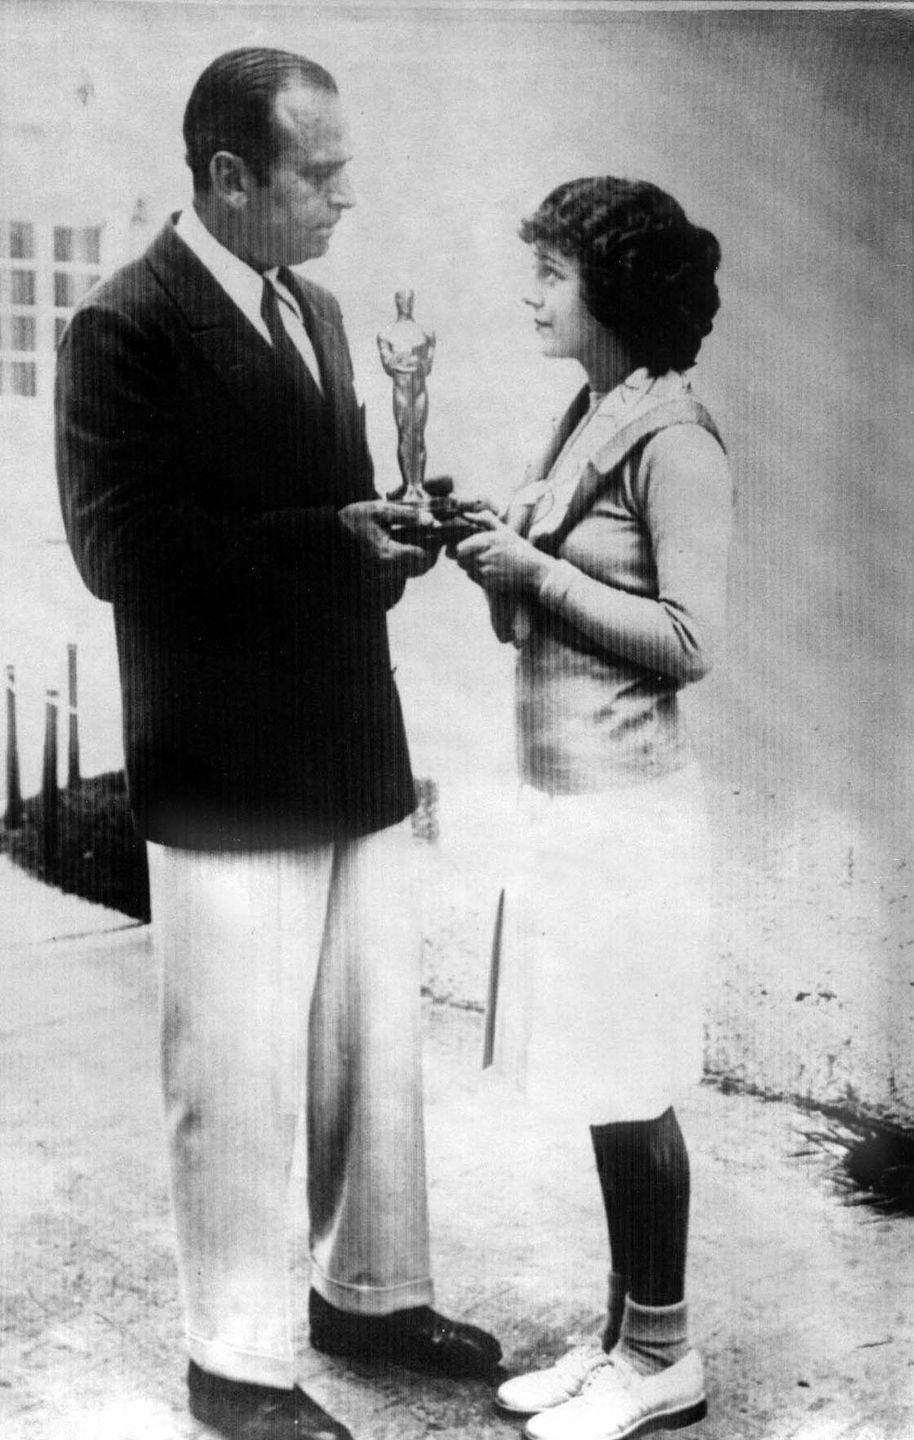 <p>Janet picked up the award for Best Actress at the <em>very</em> first Oscars in '29, which is a v cool fact to have about yourself. She did so in a simple but classic outfit featuring a blazer, skirt, tights, and loafers which deserves a whole other award on its own, TBH.</p>